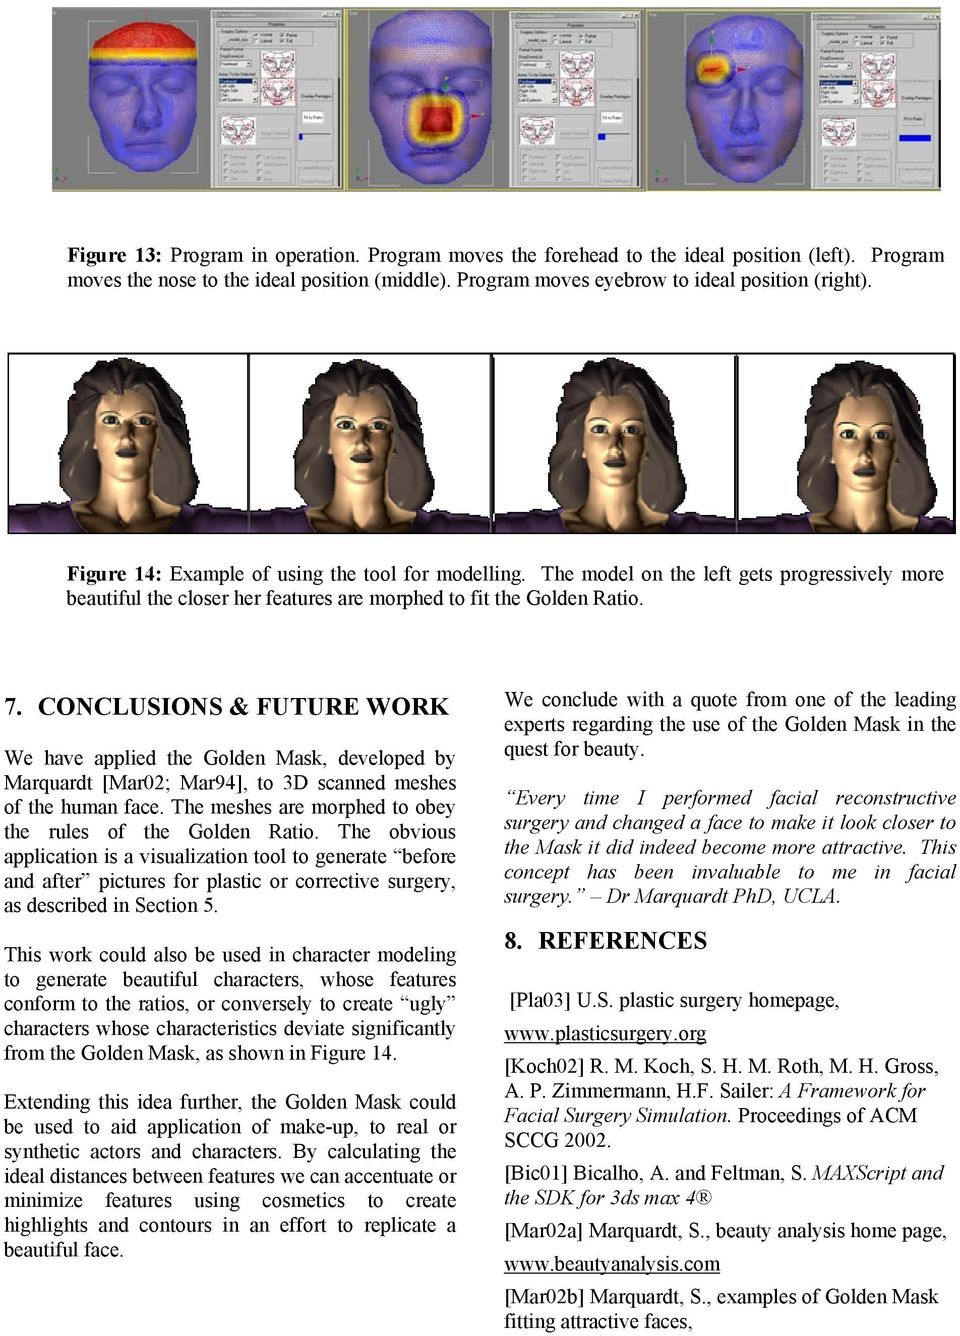 CONCLUSIONS & FUTURE WORK We have applied the Golden Mask, developed by Marquardt [Mar02; Mar94], to 3D scanned meshes of the human face. The meshes are morphed to obey the rules of the Golden Ratio.